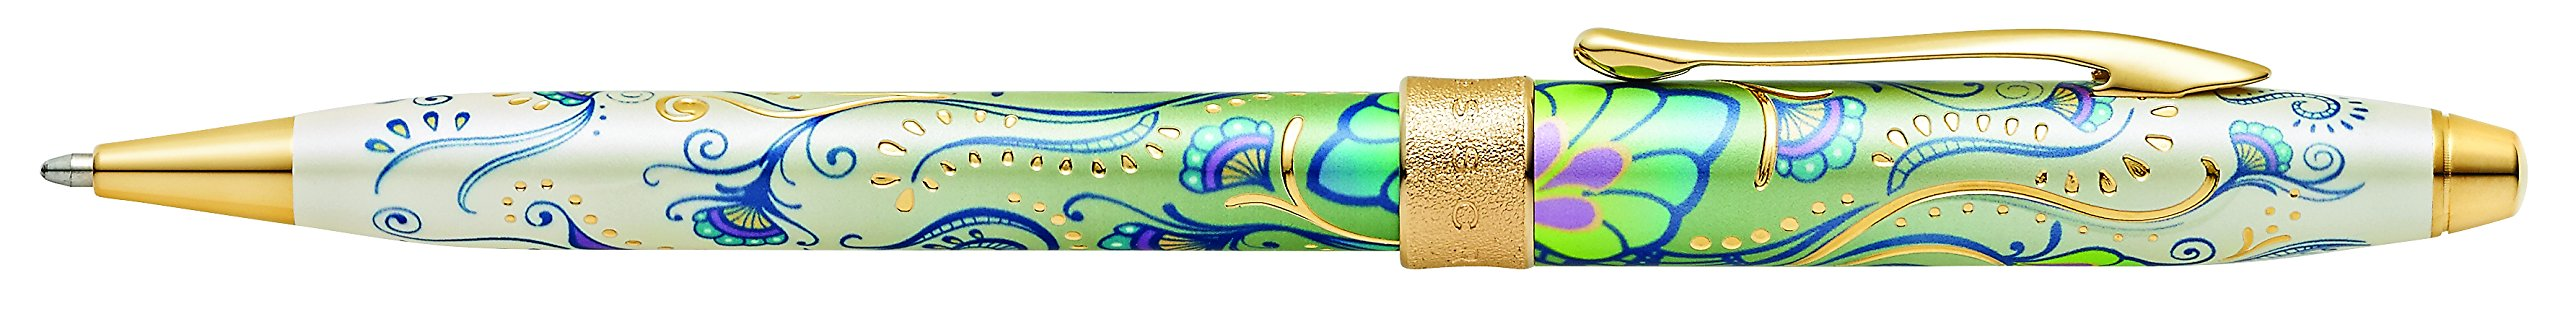 Cross Botanica Green Daylily Ballpoint Pen by Cross (Image #3)